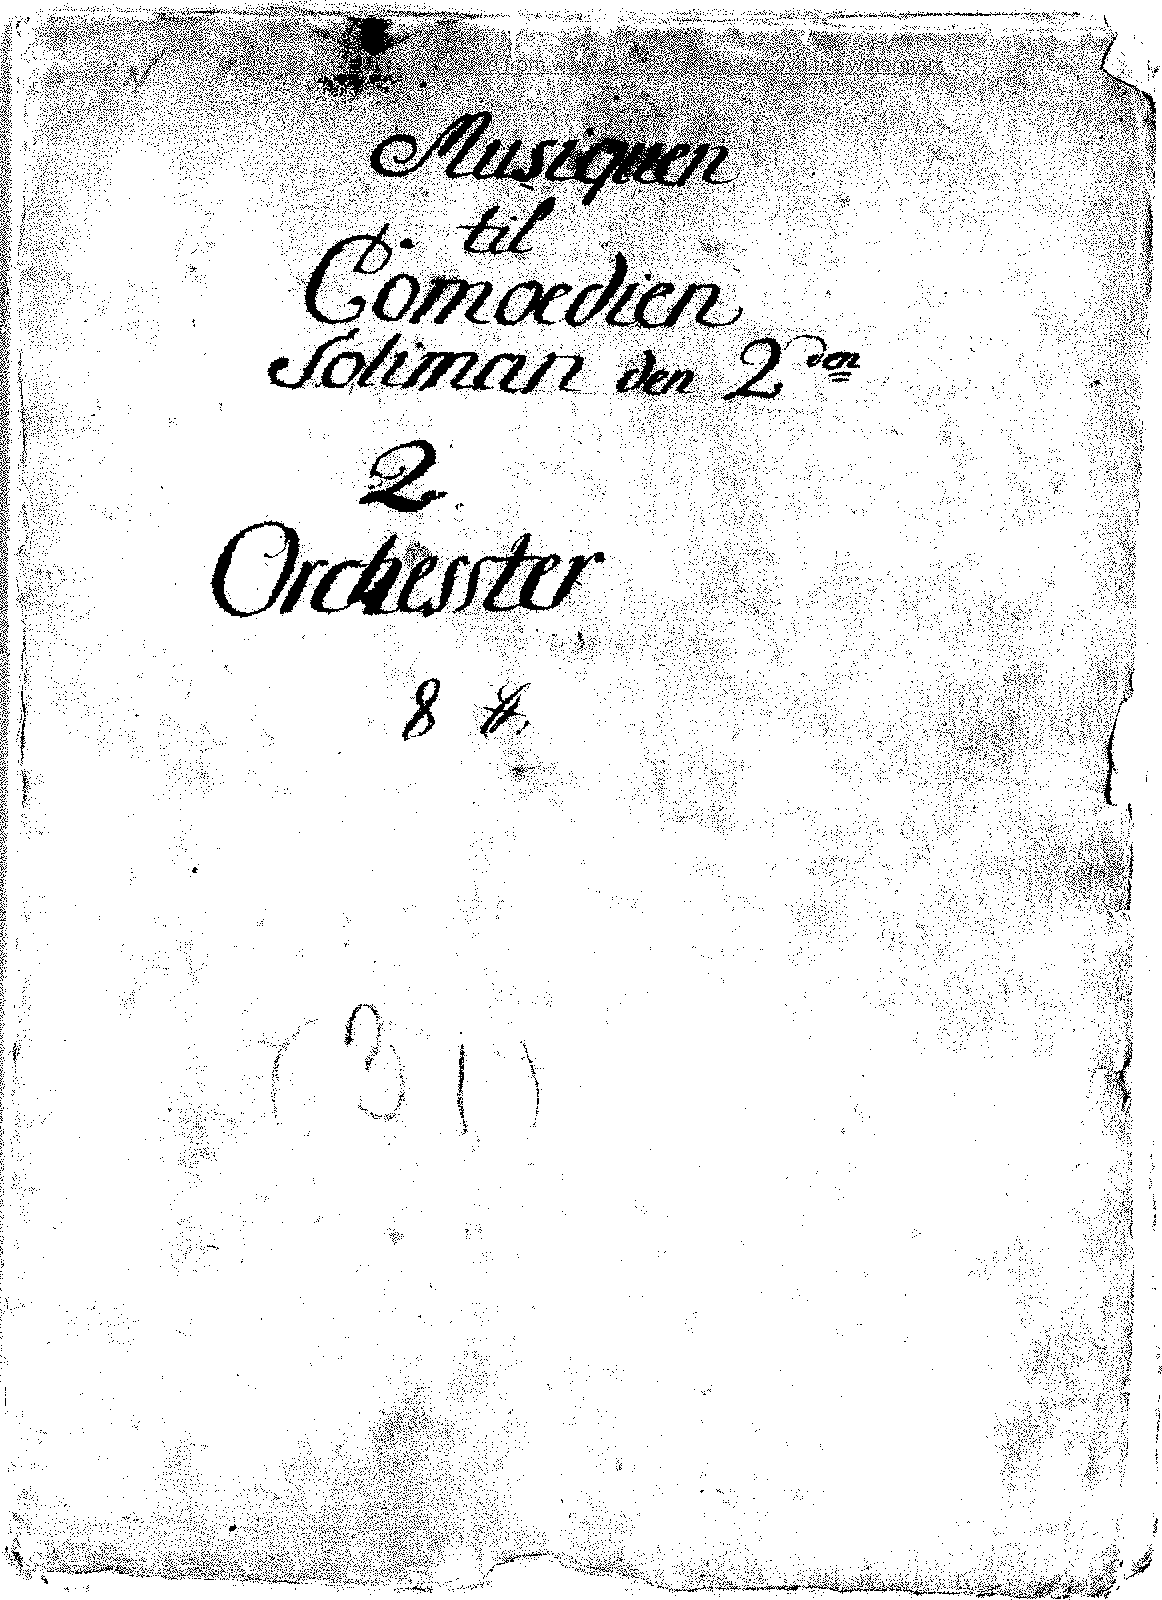 PMLP181911-sol orch 2.pdf